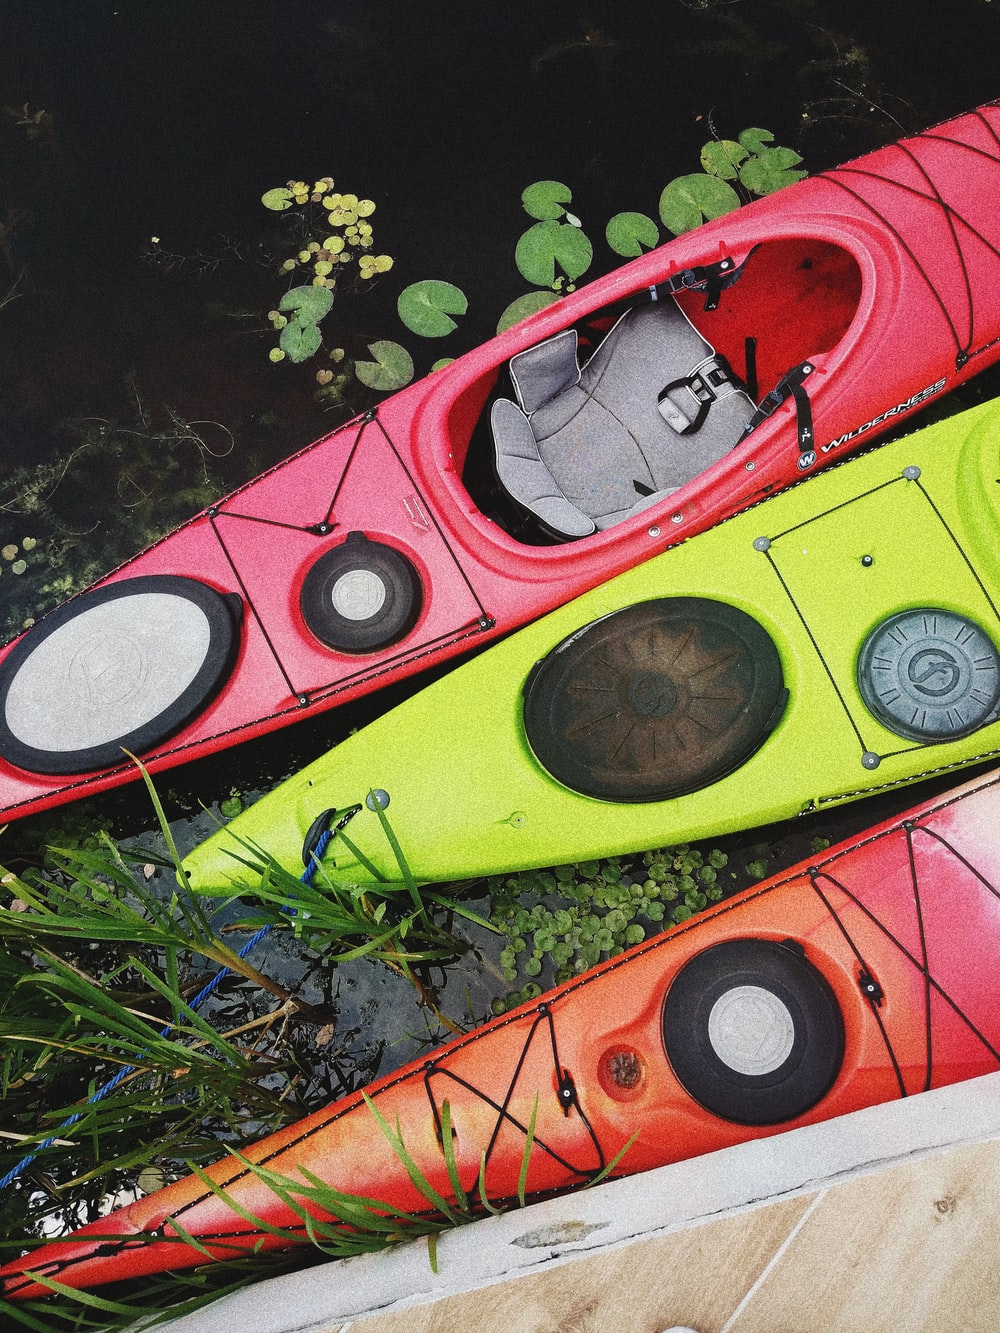 two red and one yellow kayaks on body of water